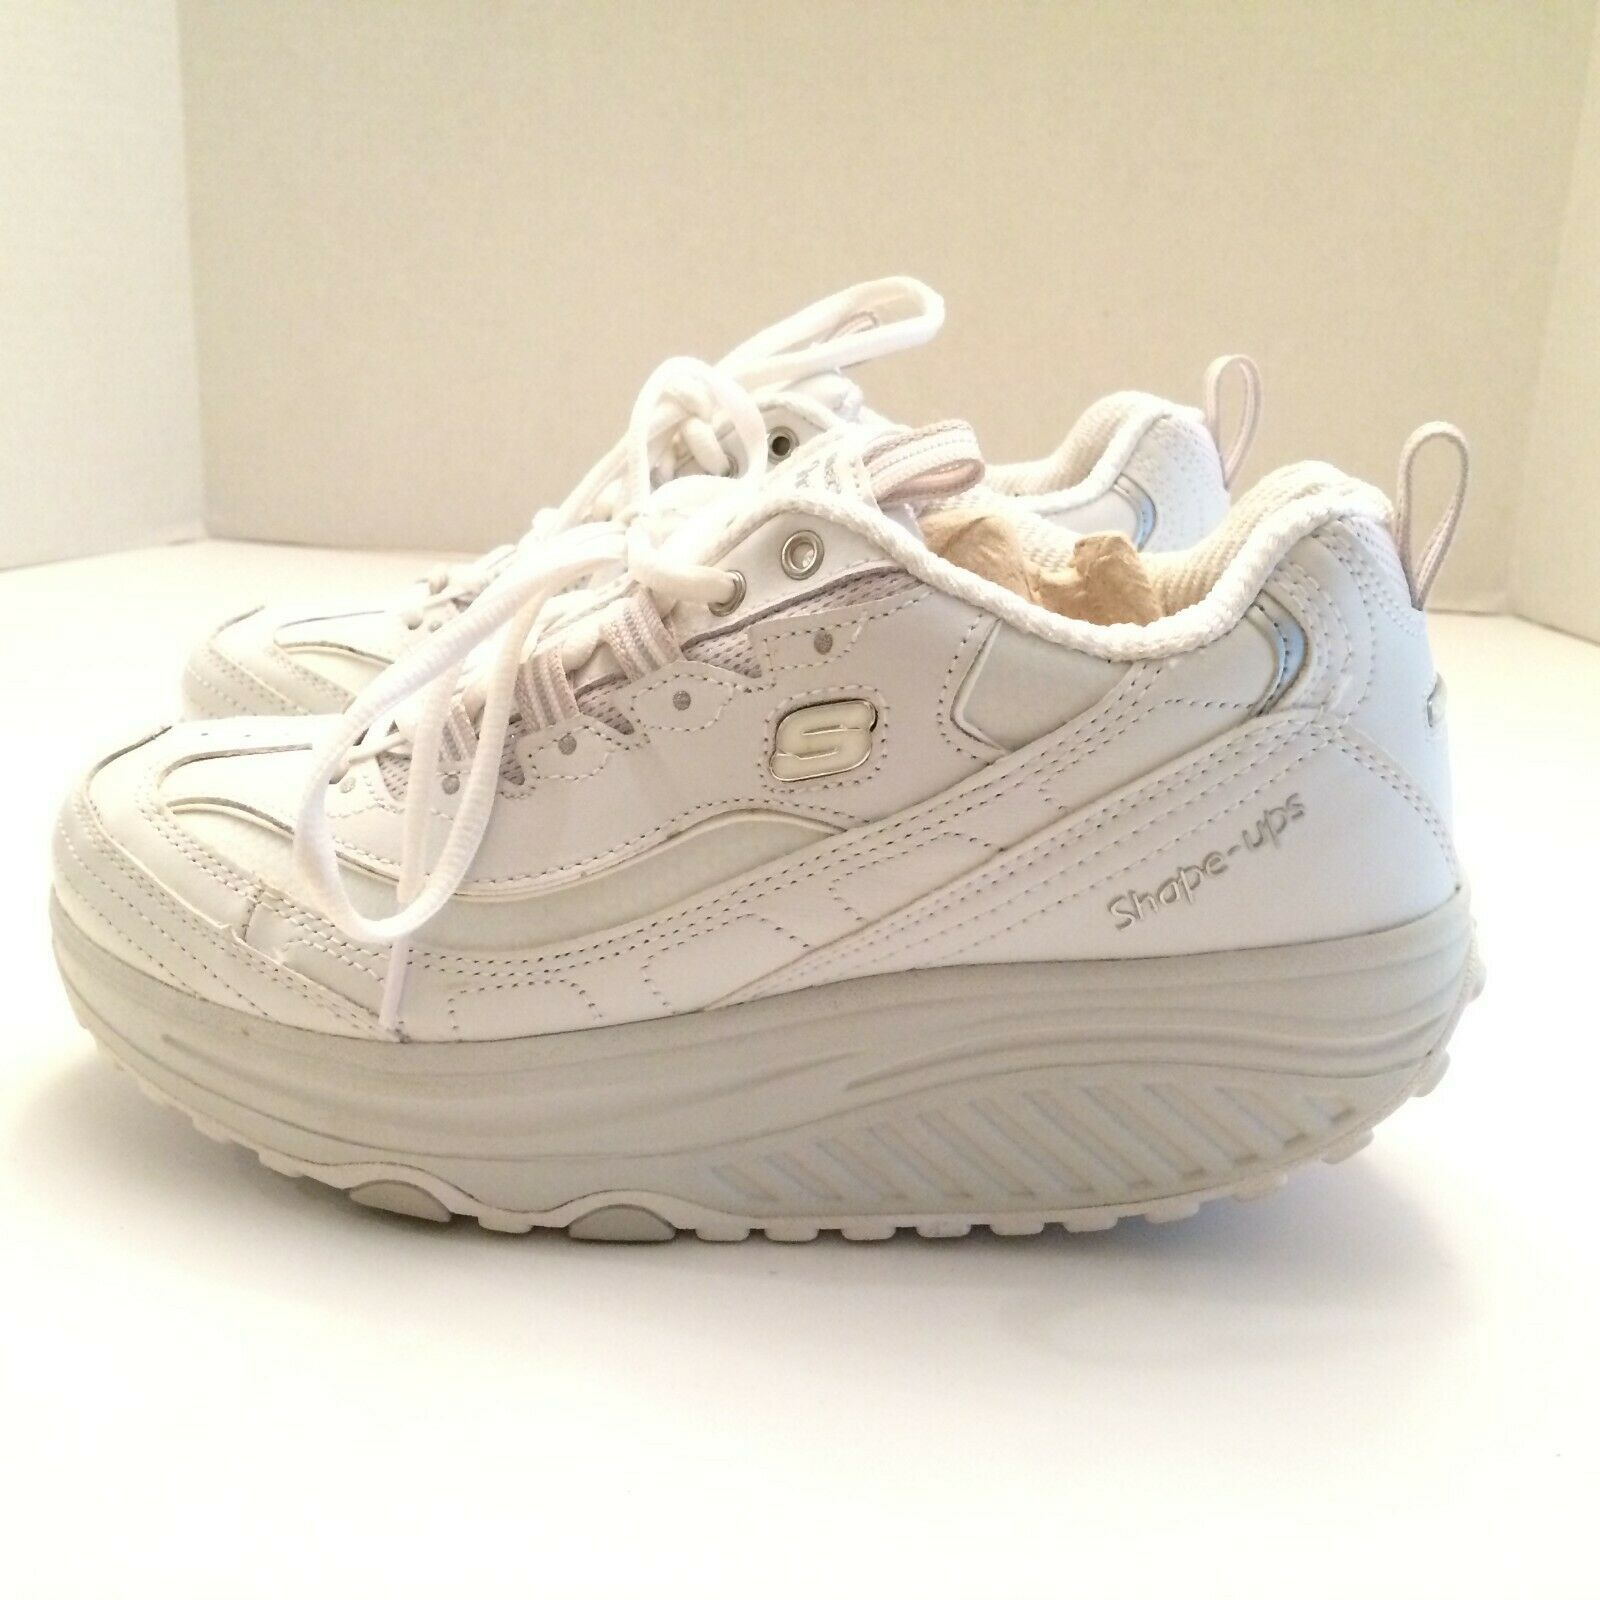 Skechers Shape Ups Womens Size 8 White Silver # 11800/WSL Metabolize Sneakers